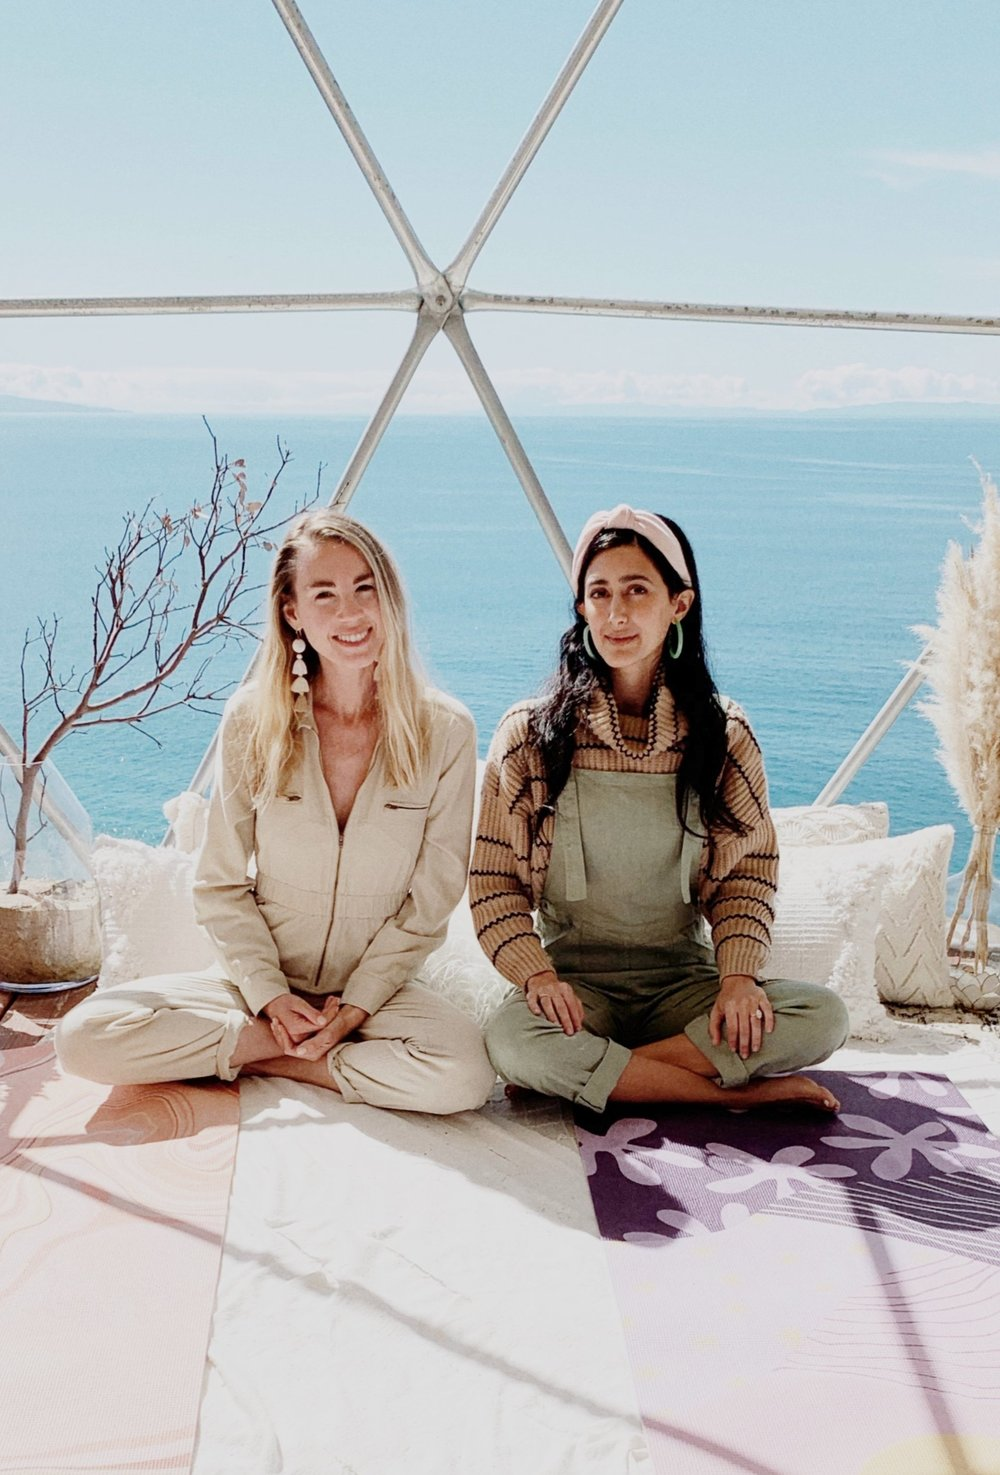 Jessie and Tara, co-founders of HOW YOU GLOW